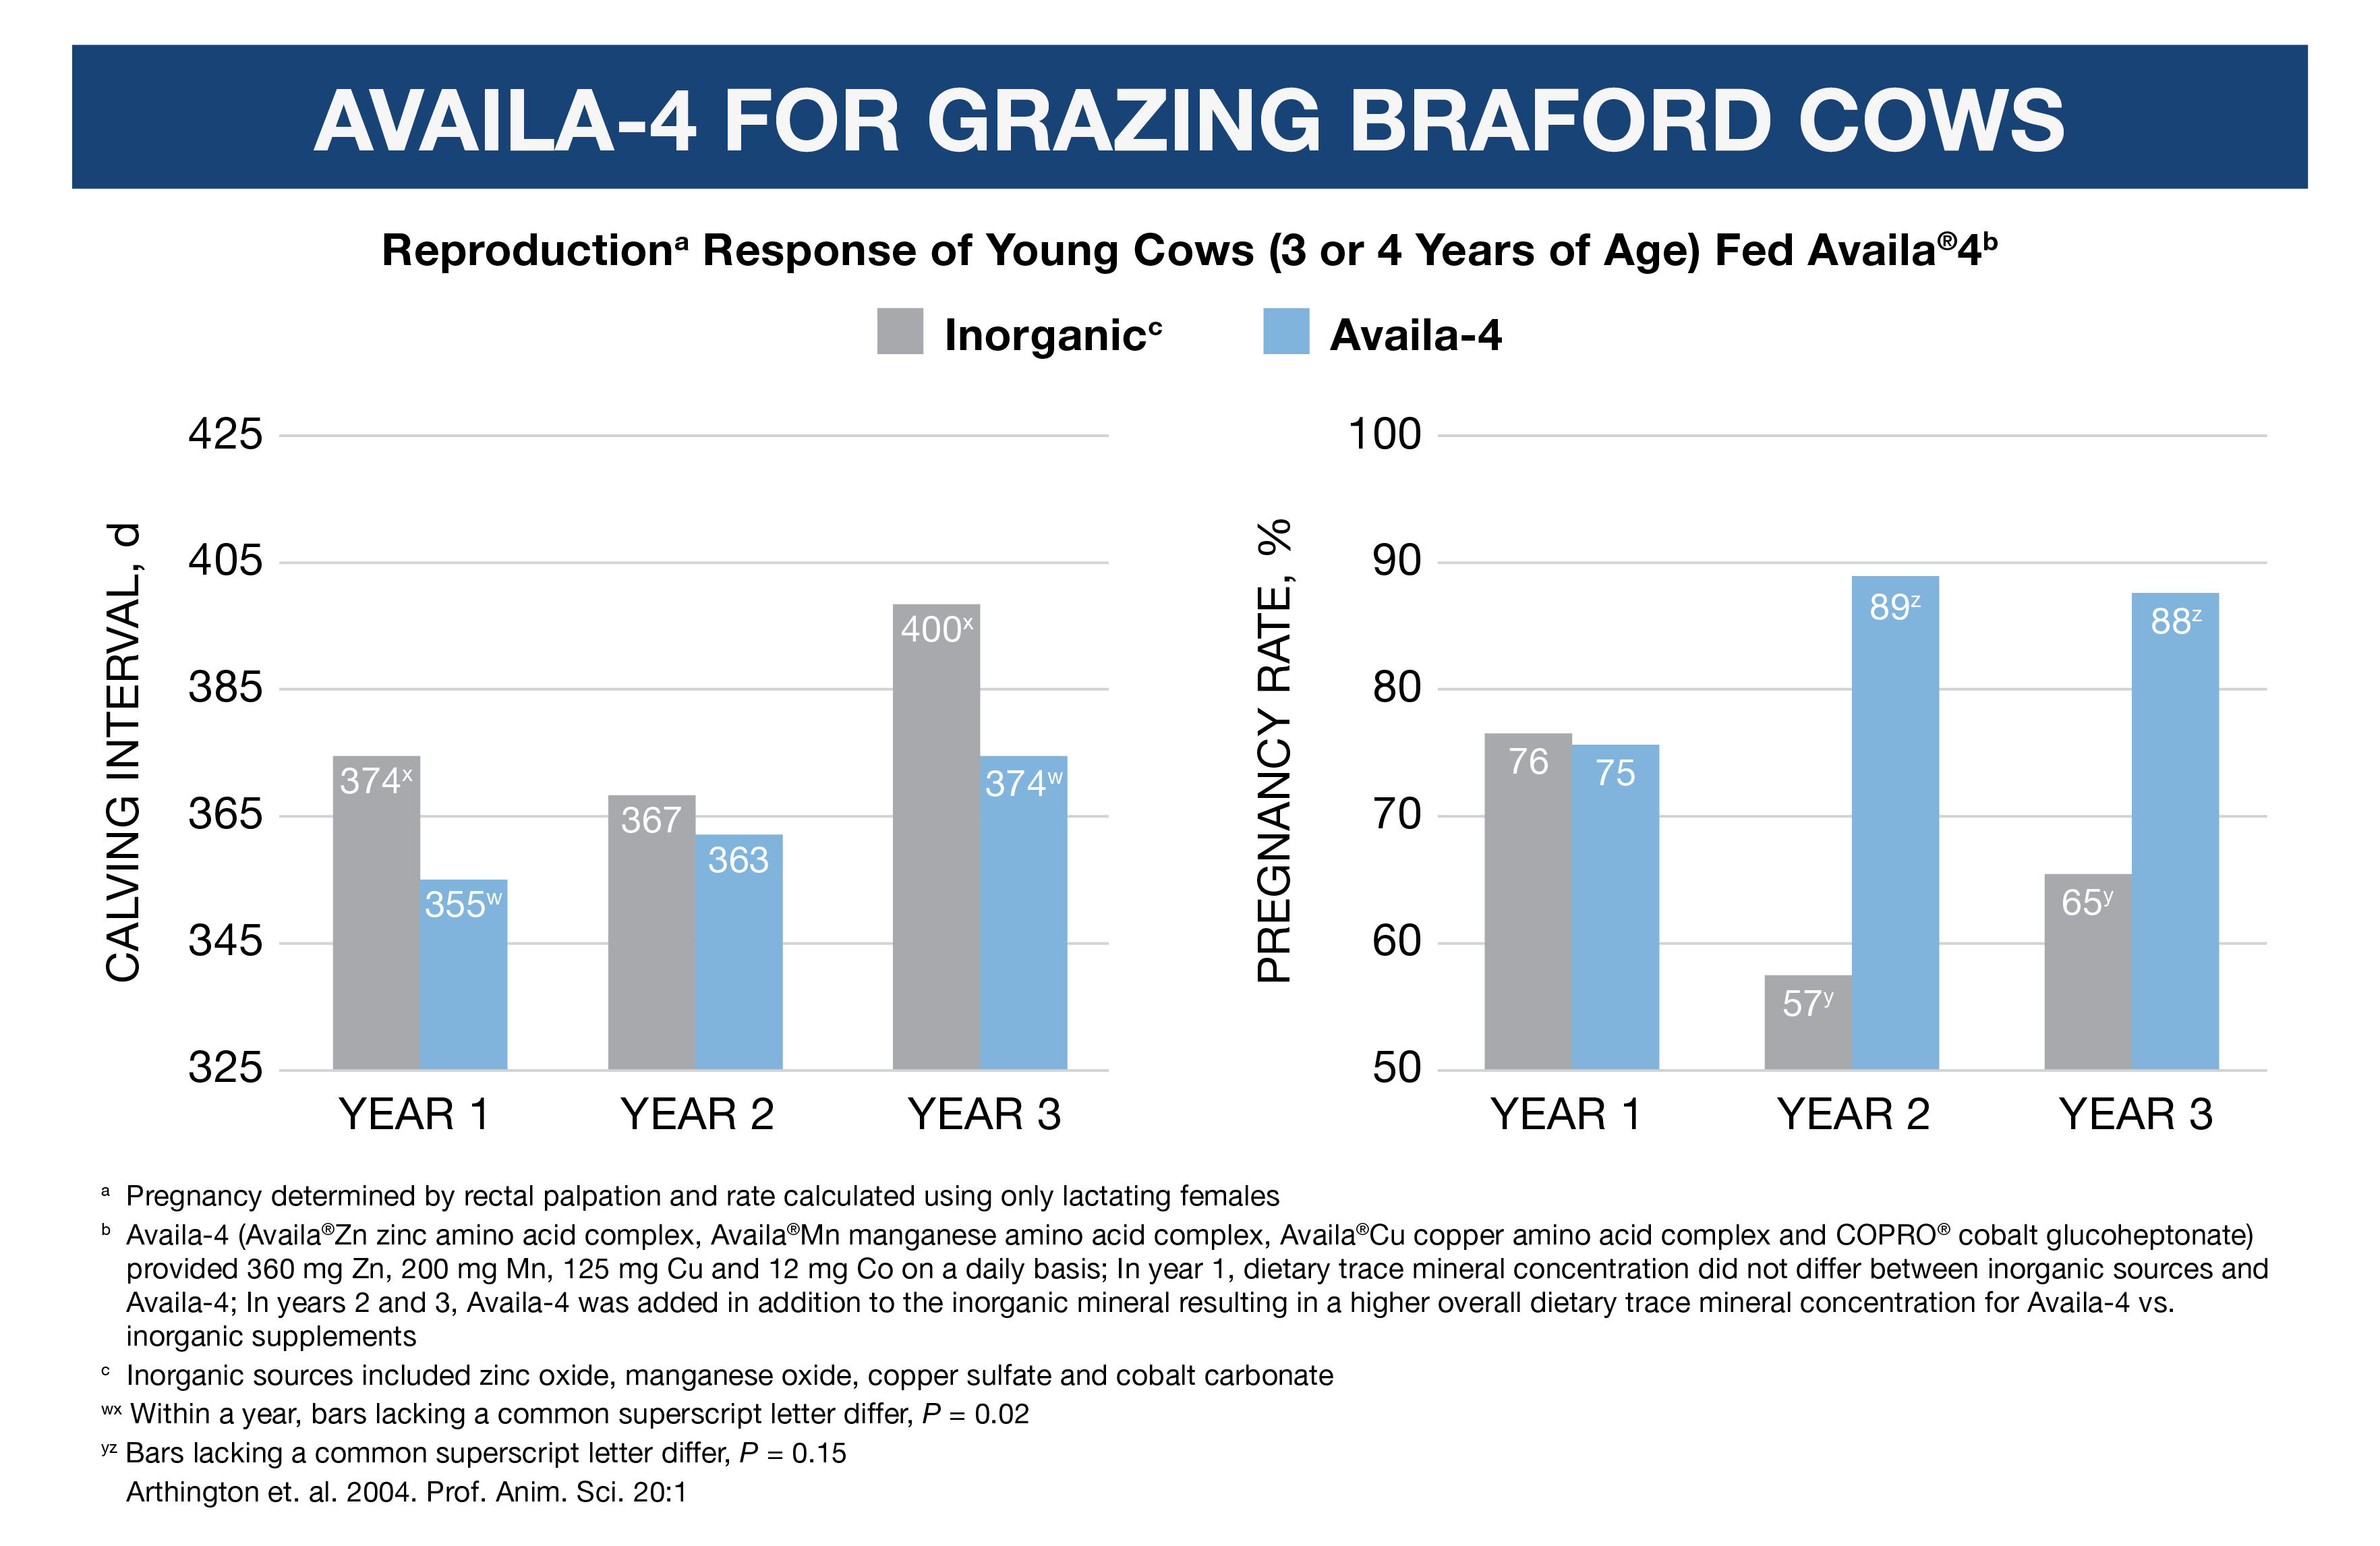 Trace_Minerals_Help_Improve_Young_Cow_Reproduction1.png